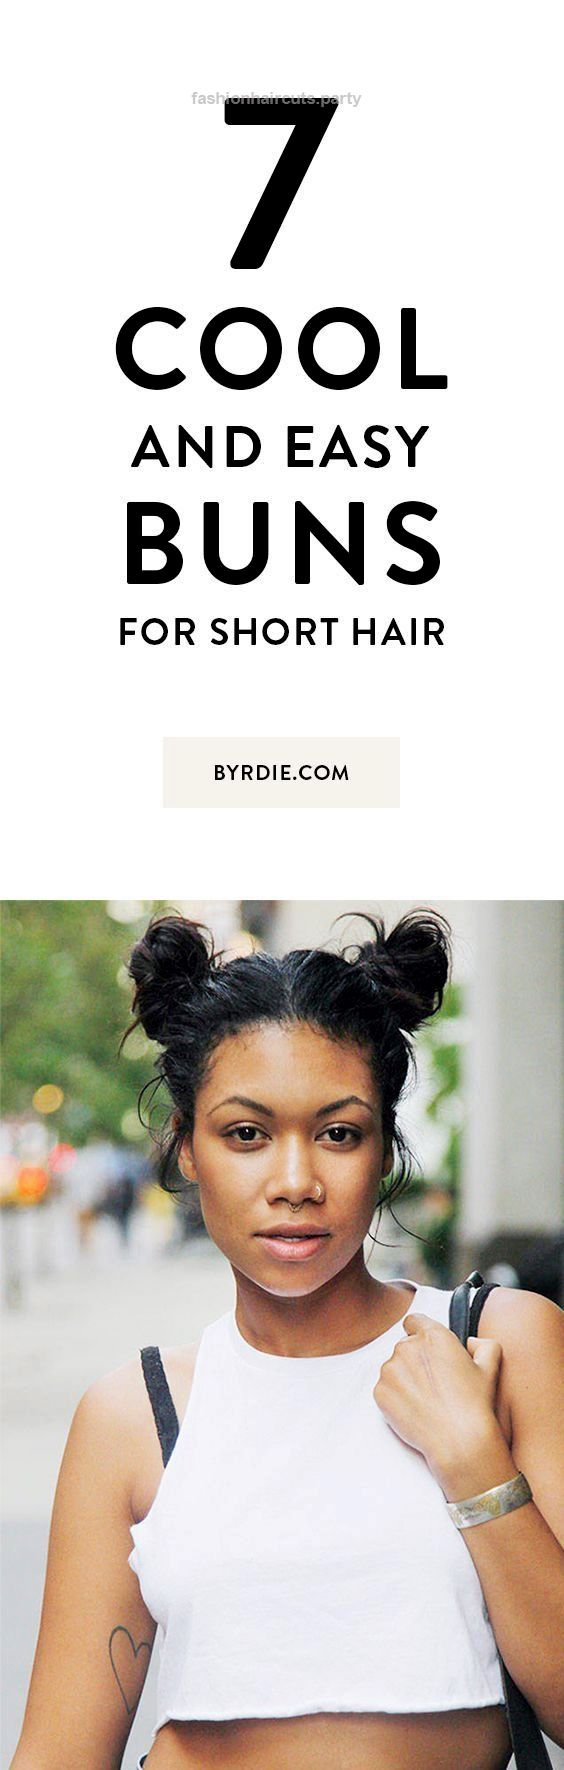 cool and easy buns that work for short hairu cool and easy